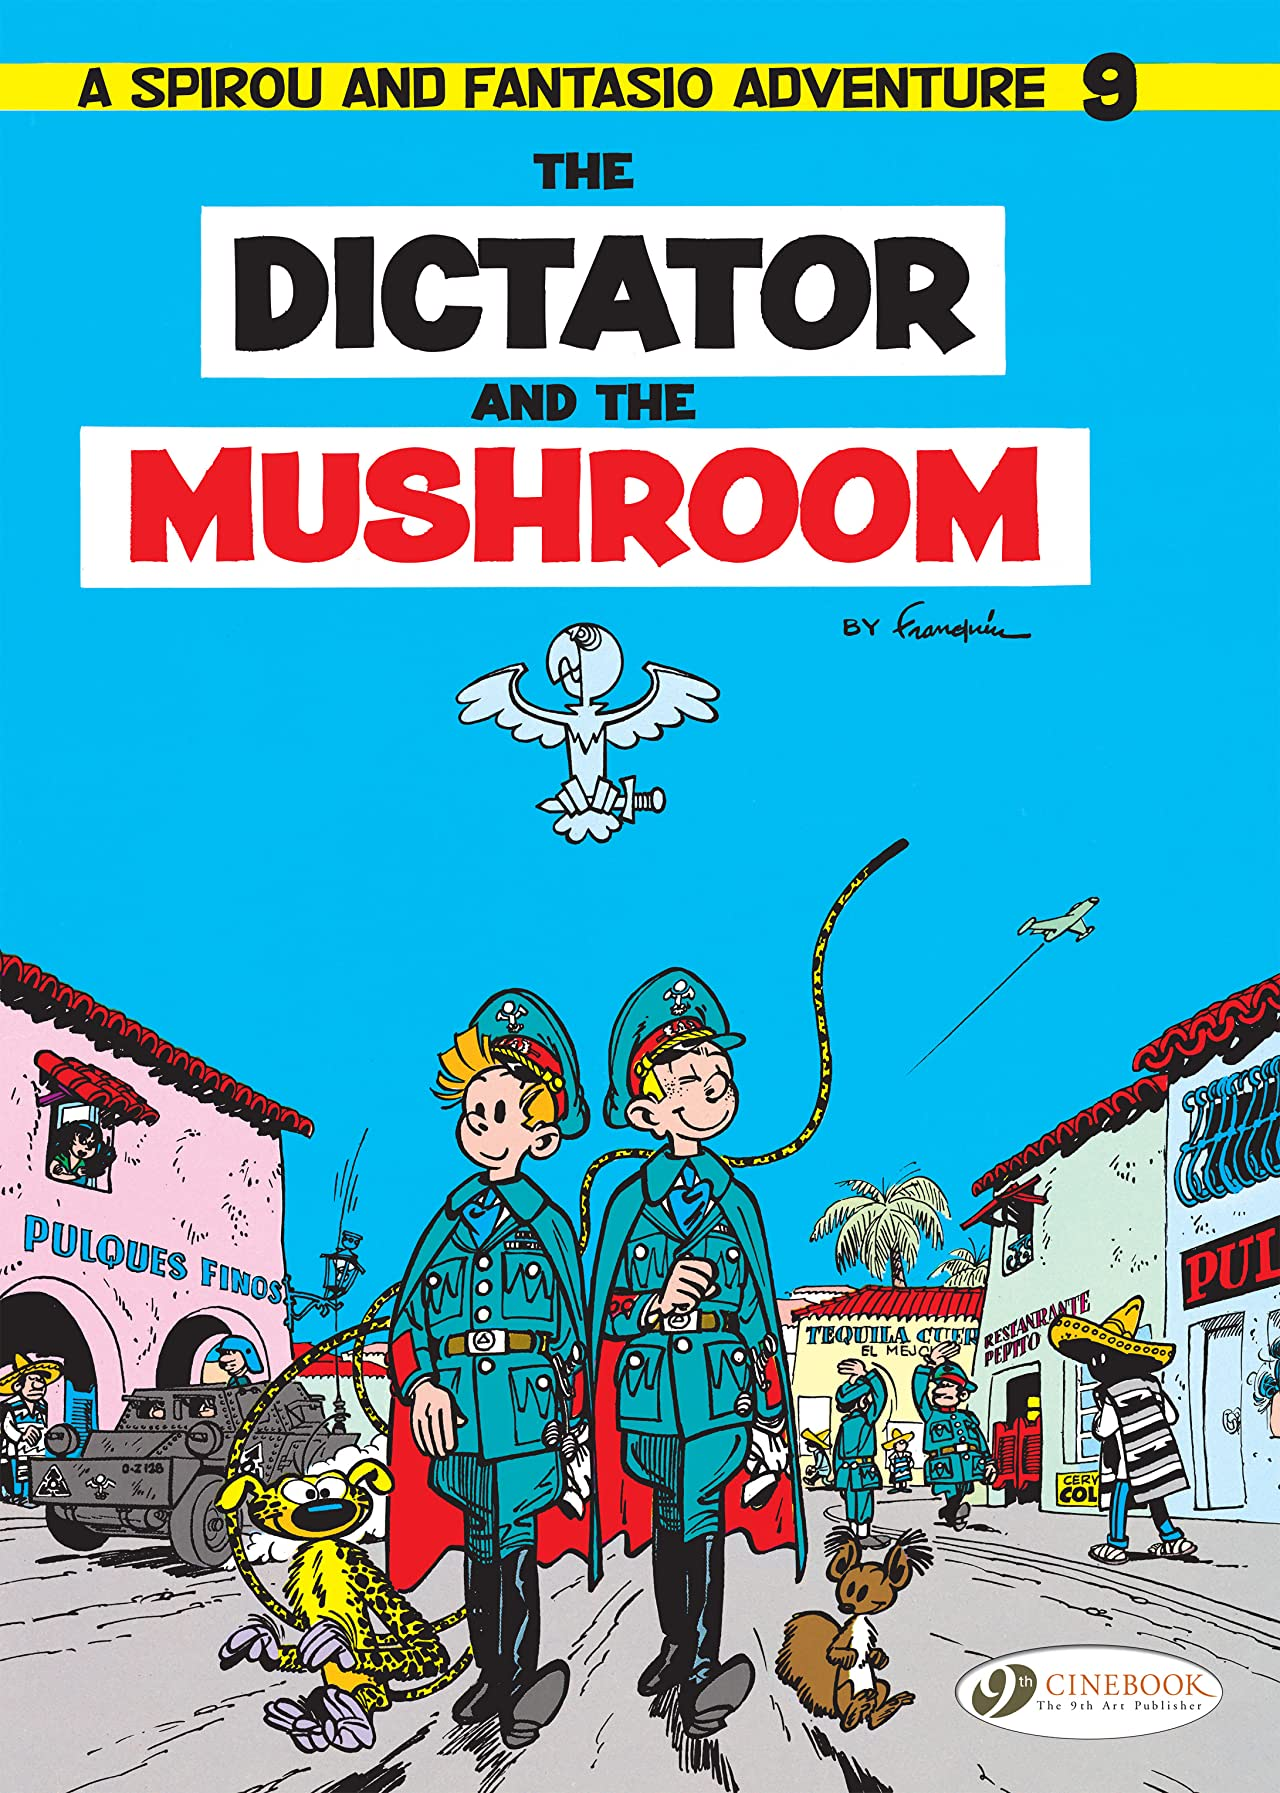 Spirou & Fantasio Vol. 9: The Dictator and the Mushroom